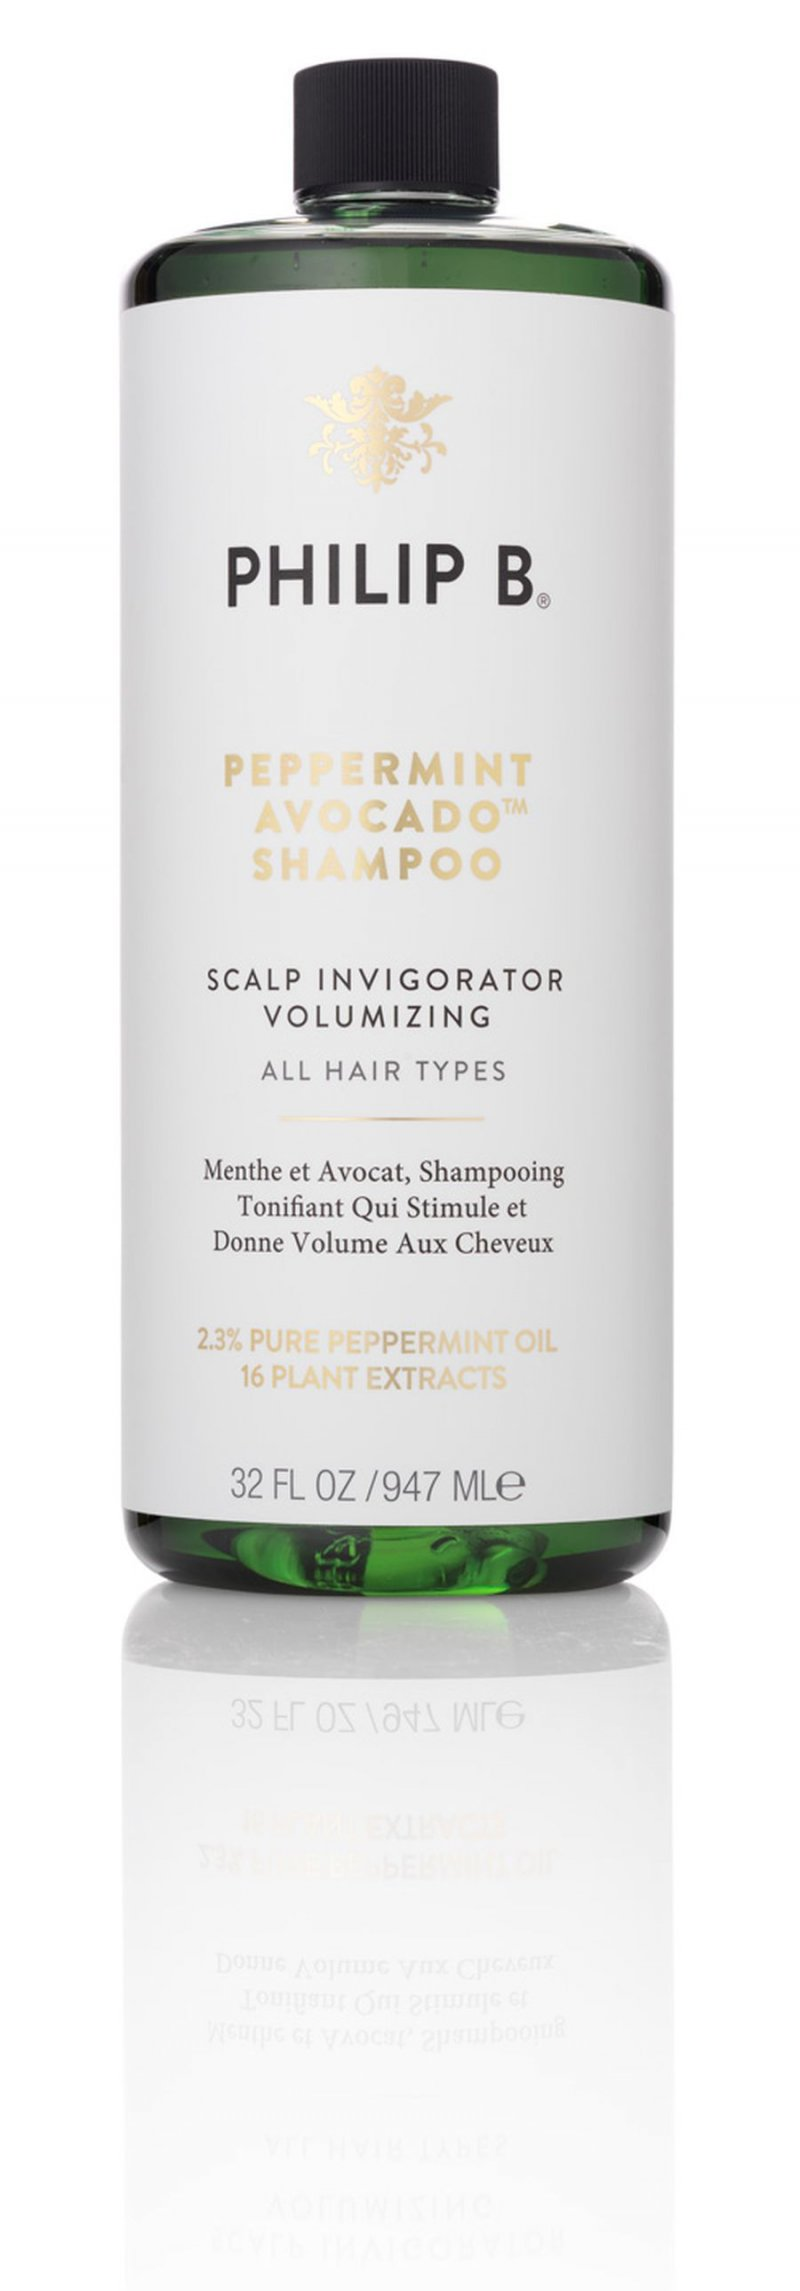 Philip B - Peppermint And Avocado Volumizing Clarifying Shampoo 947 Ml